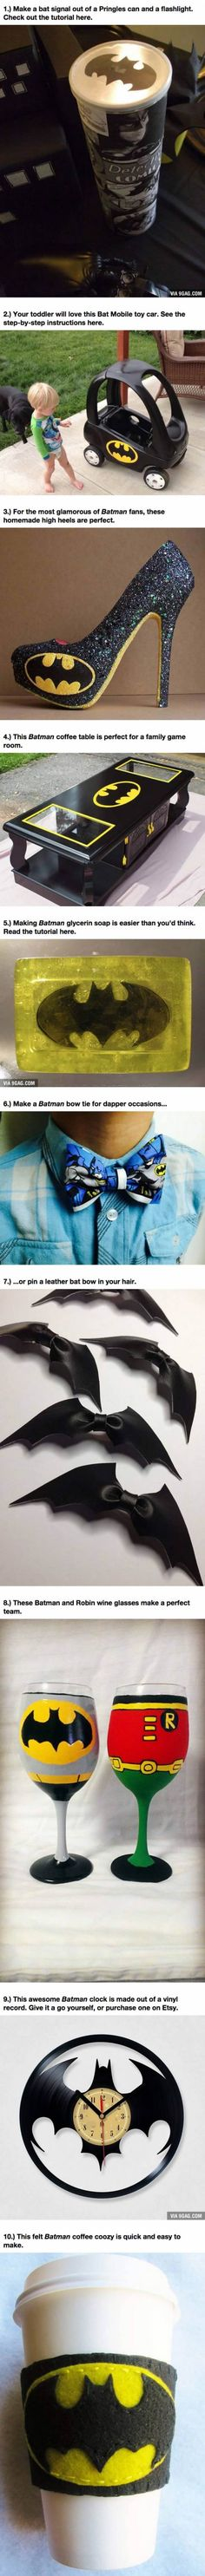 Check Out These 10 Geeky DIY Projects For Any Batman Obsessed Fan Xx